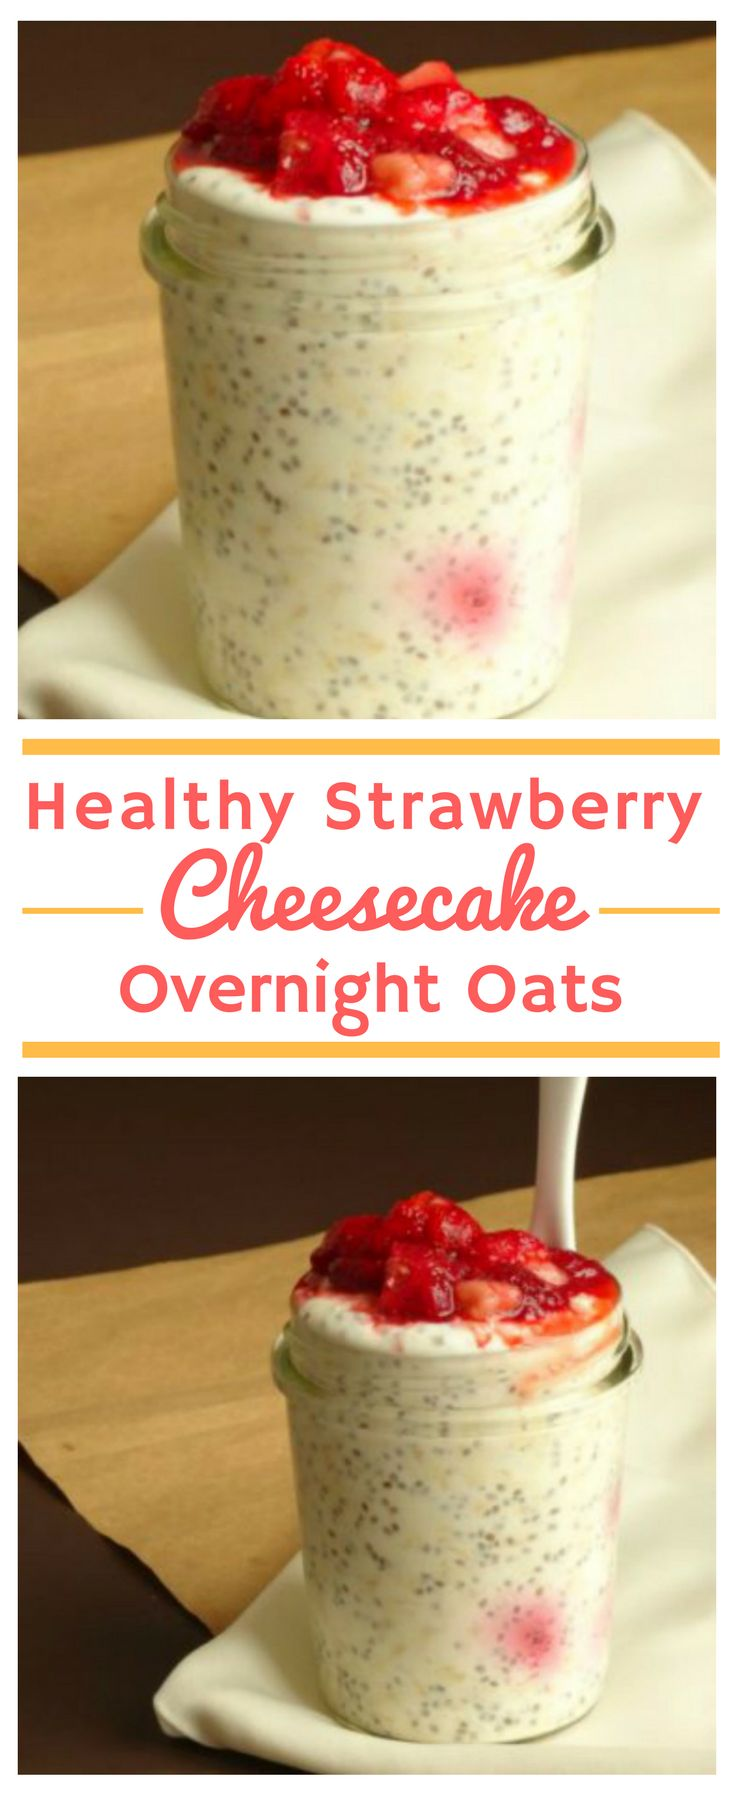 how to make overnight oats from instant oatmeal